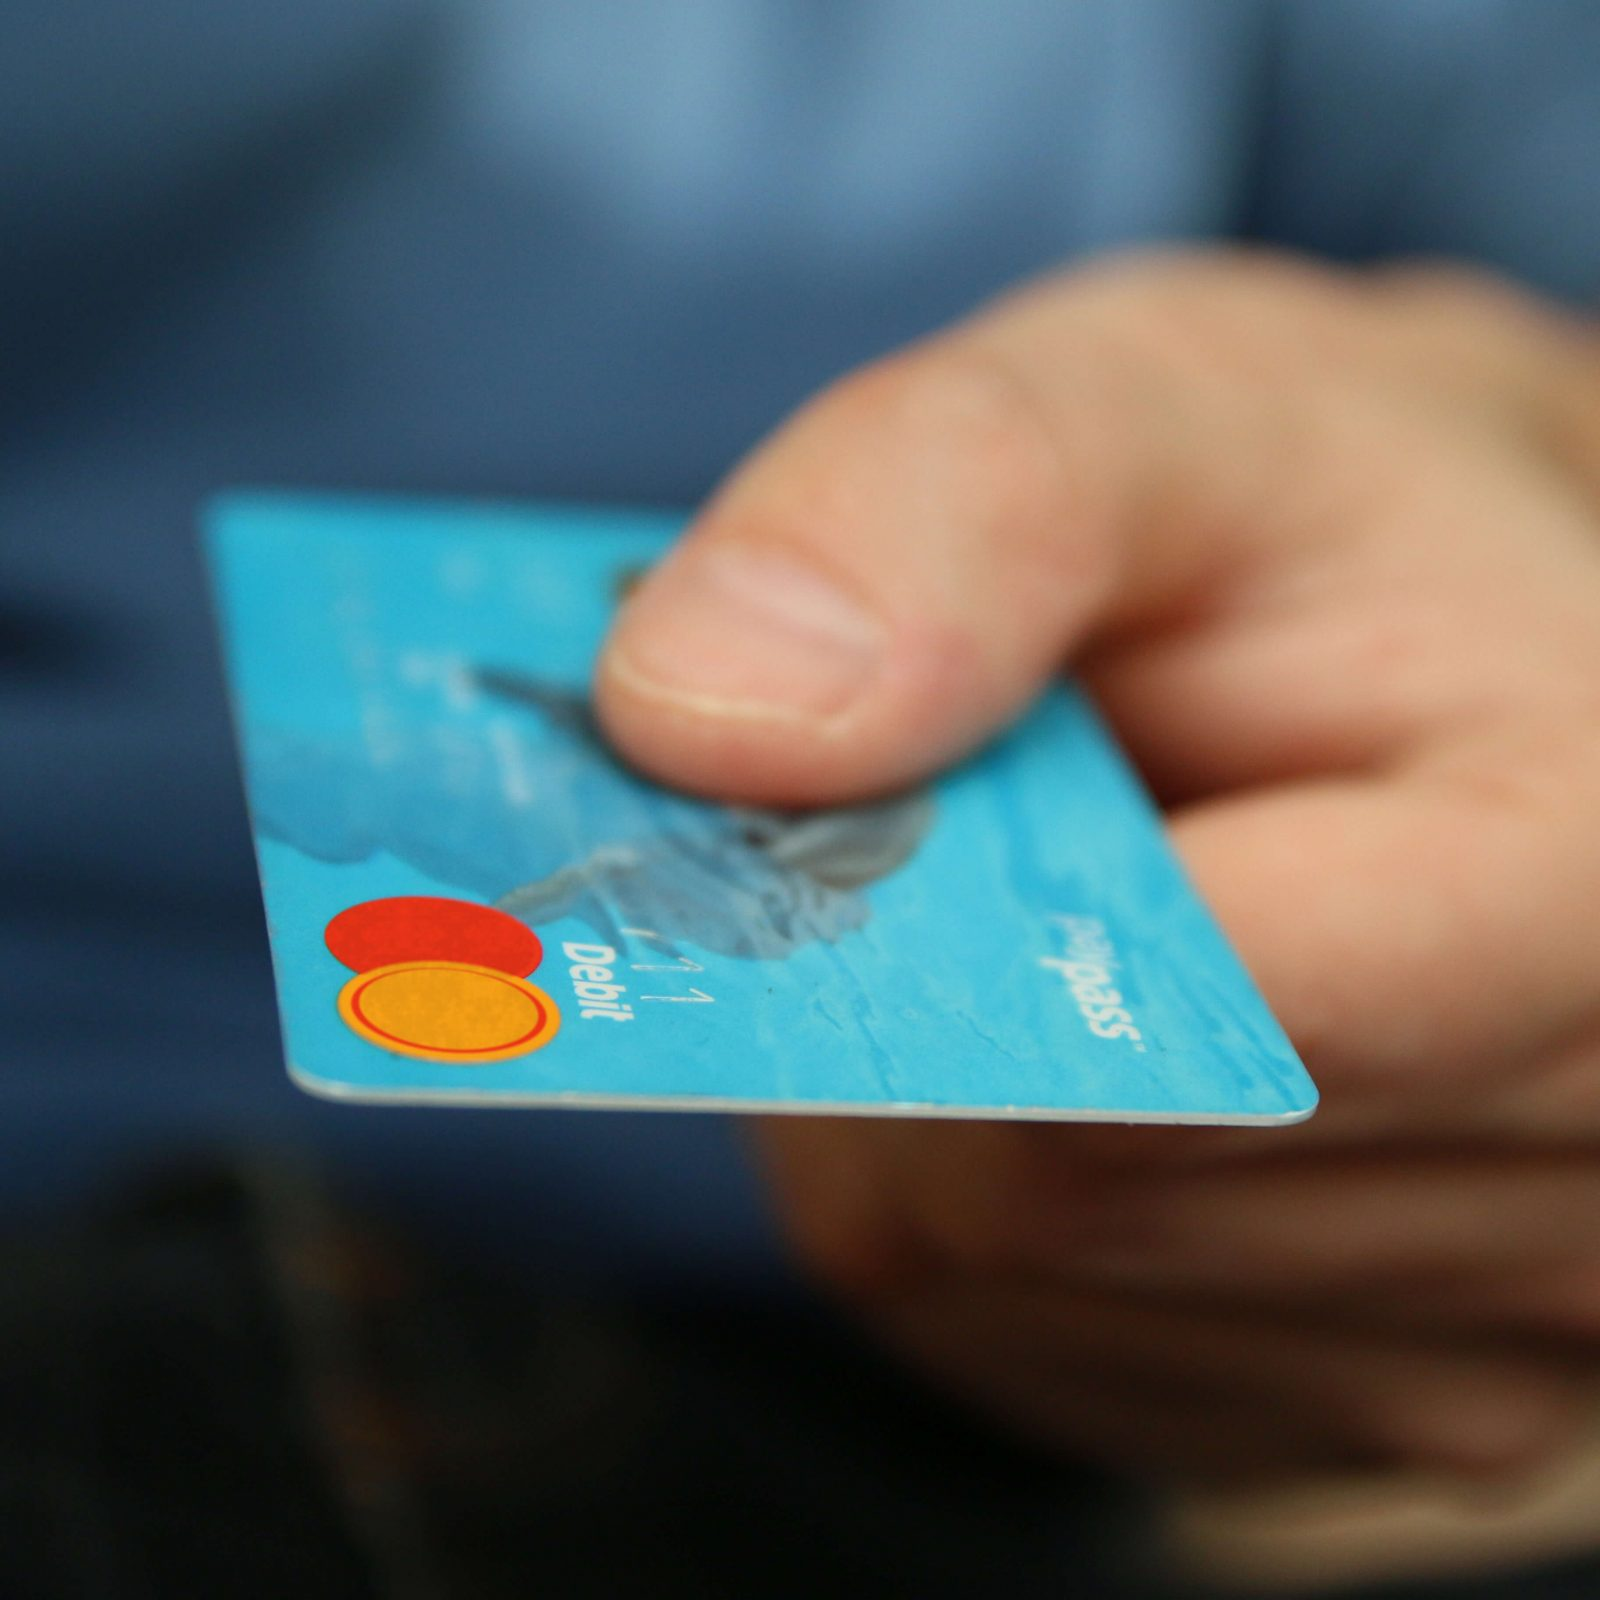 A hand reaching out and handing out a debit card with their thumb covering the card numbers.